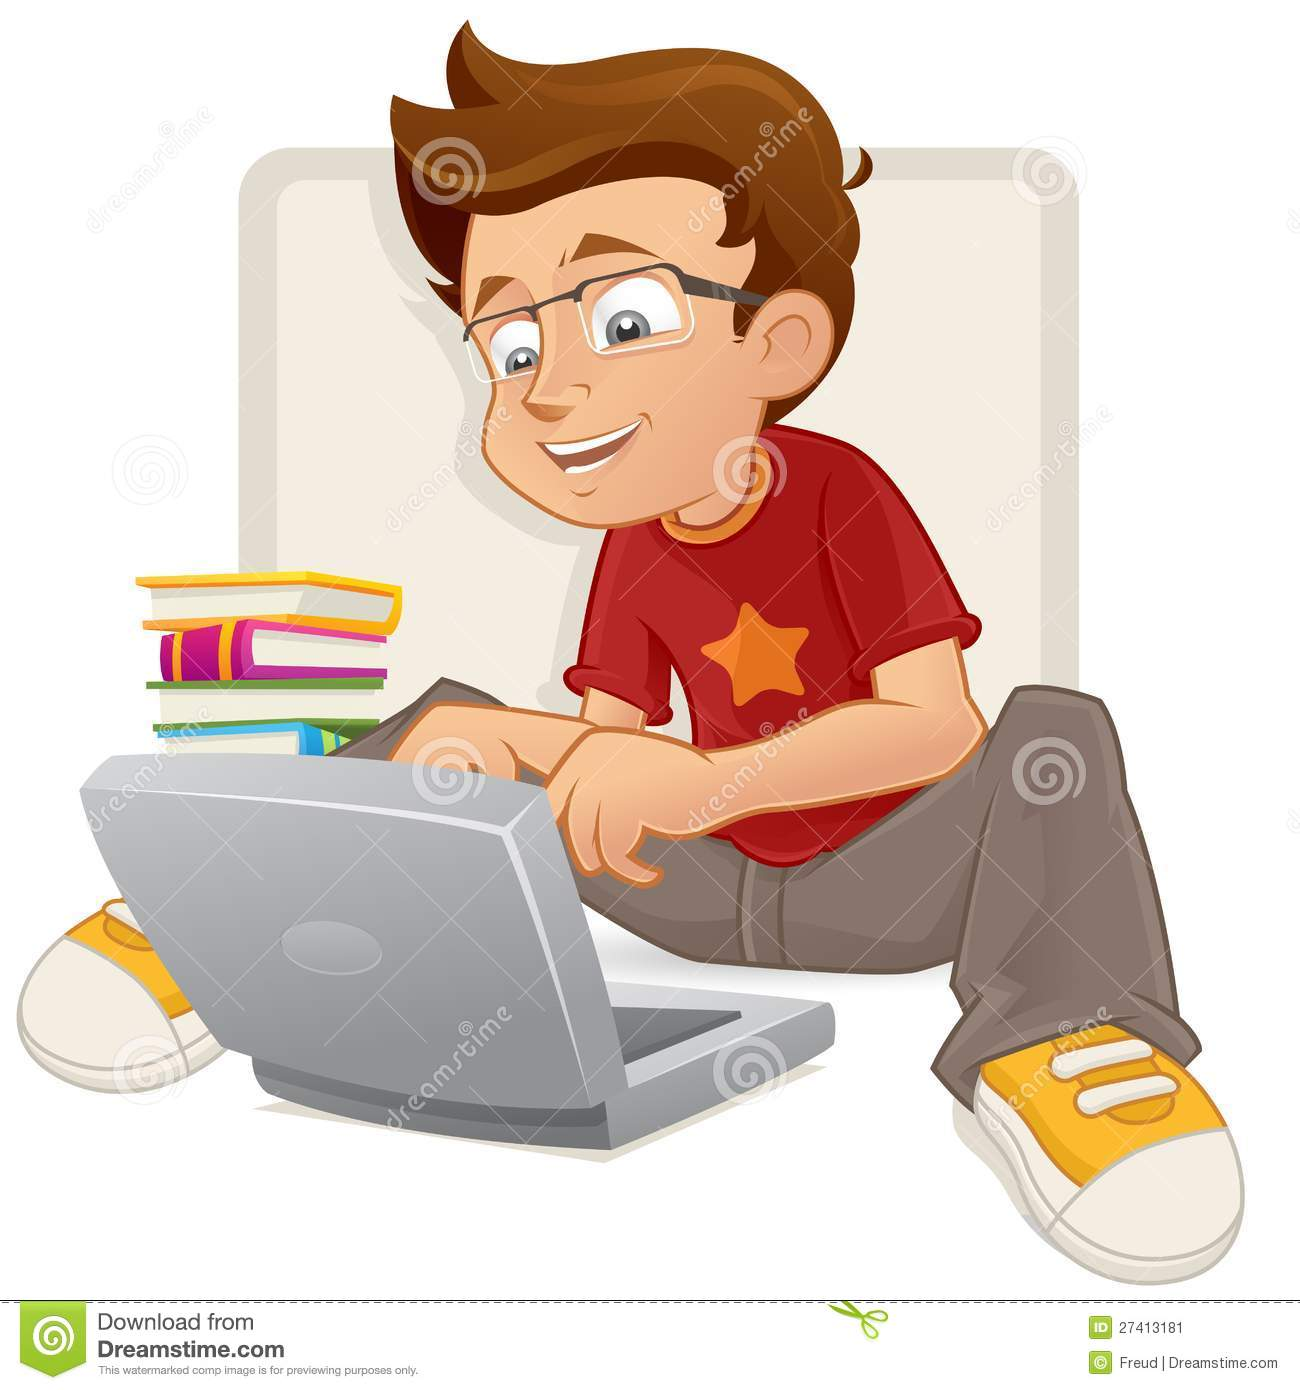 Smart Boy Clipart - Clipart Kid